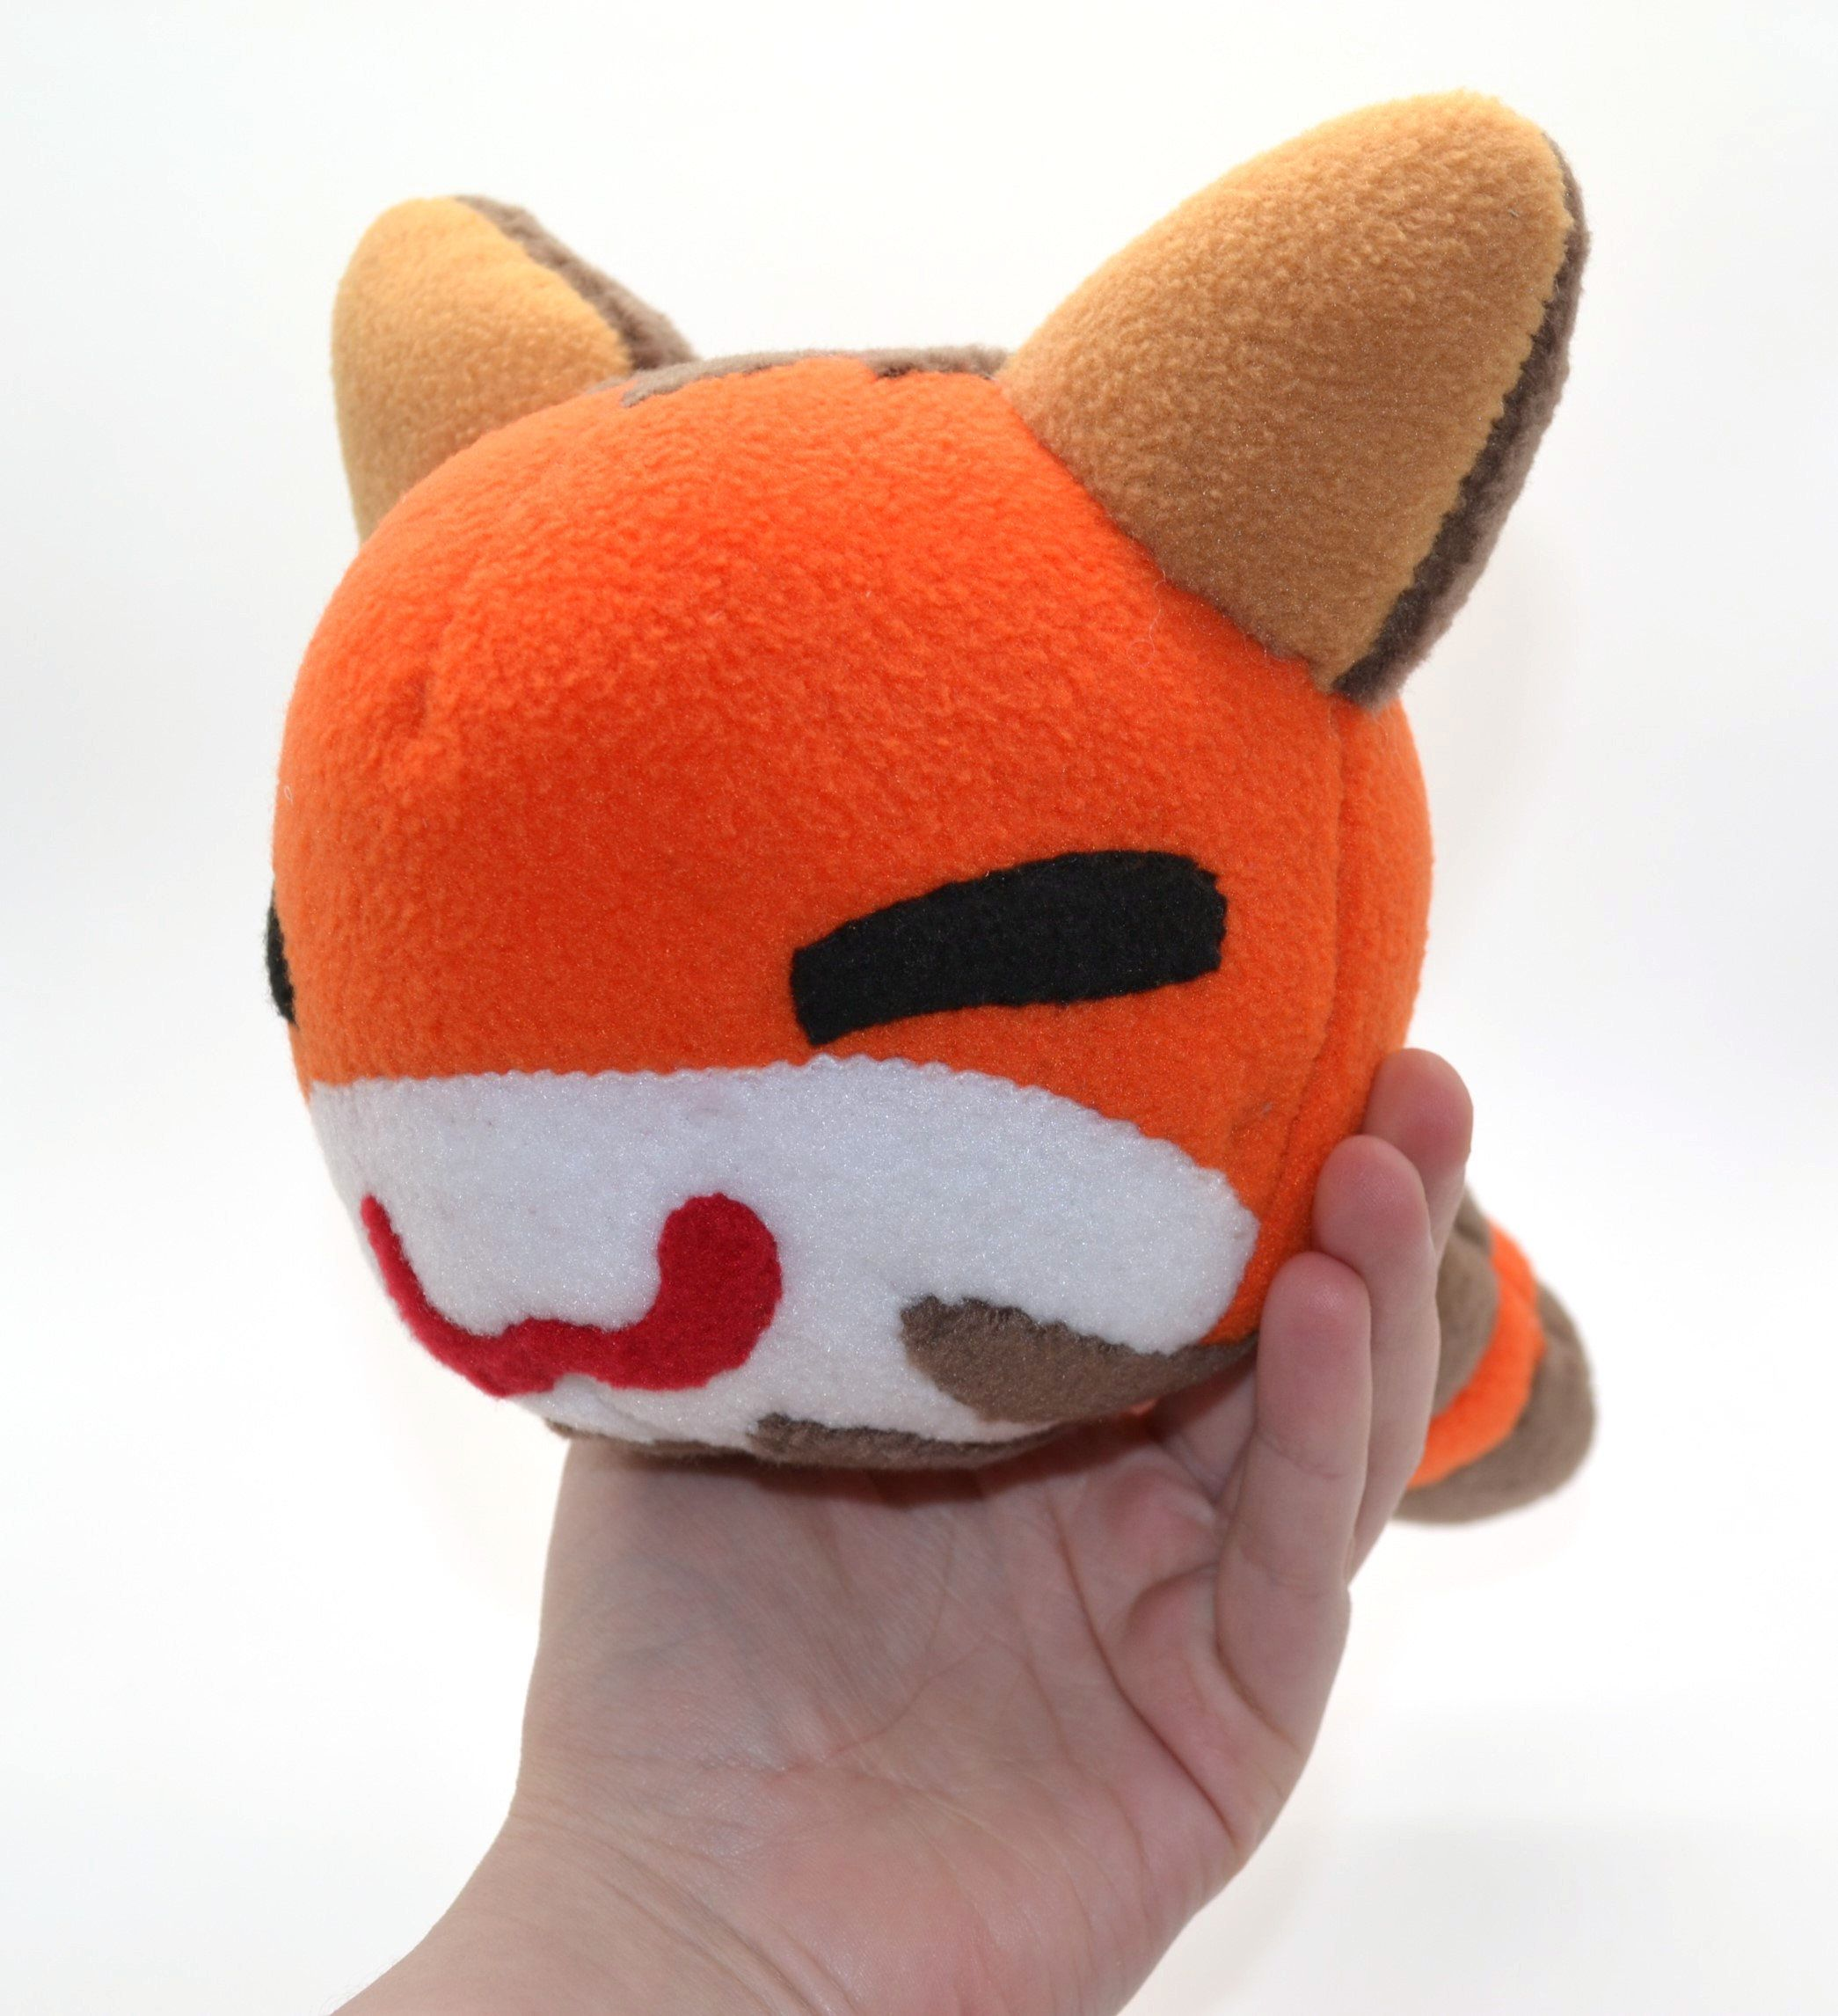 Slime Rancher Christmas 2020 Tiger Tabby Slime Rancher Plush | Etsy in 2020 | Slime rancher